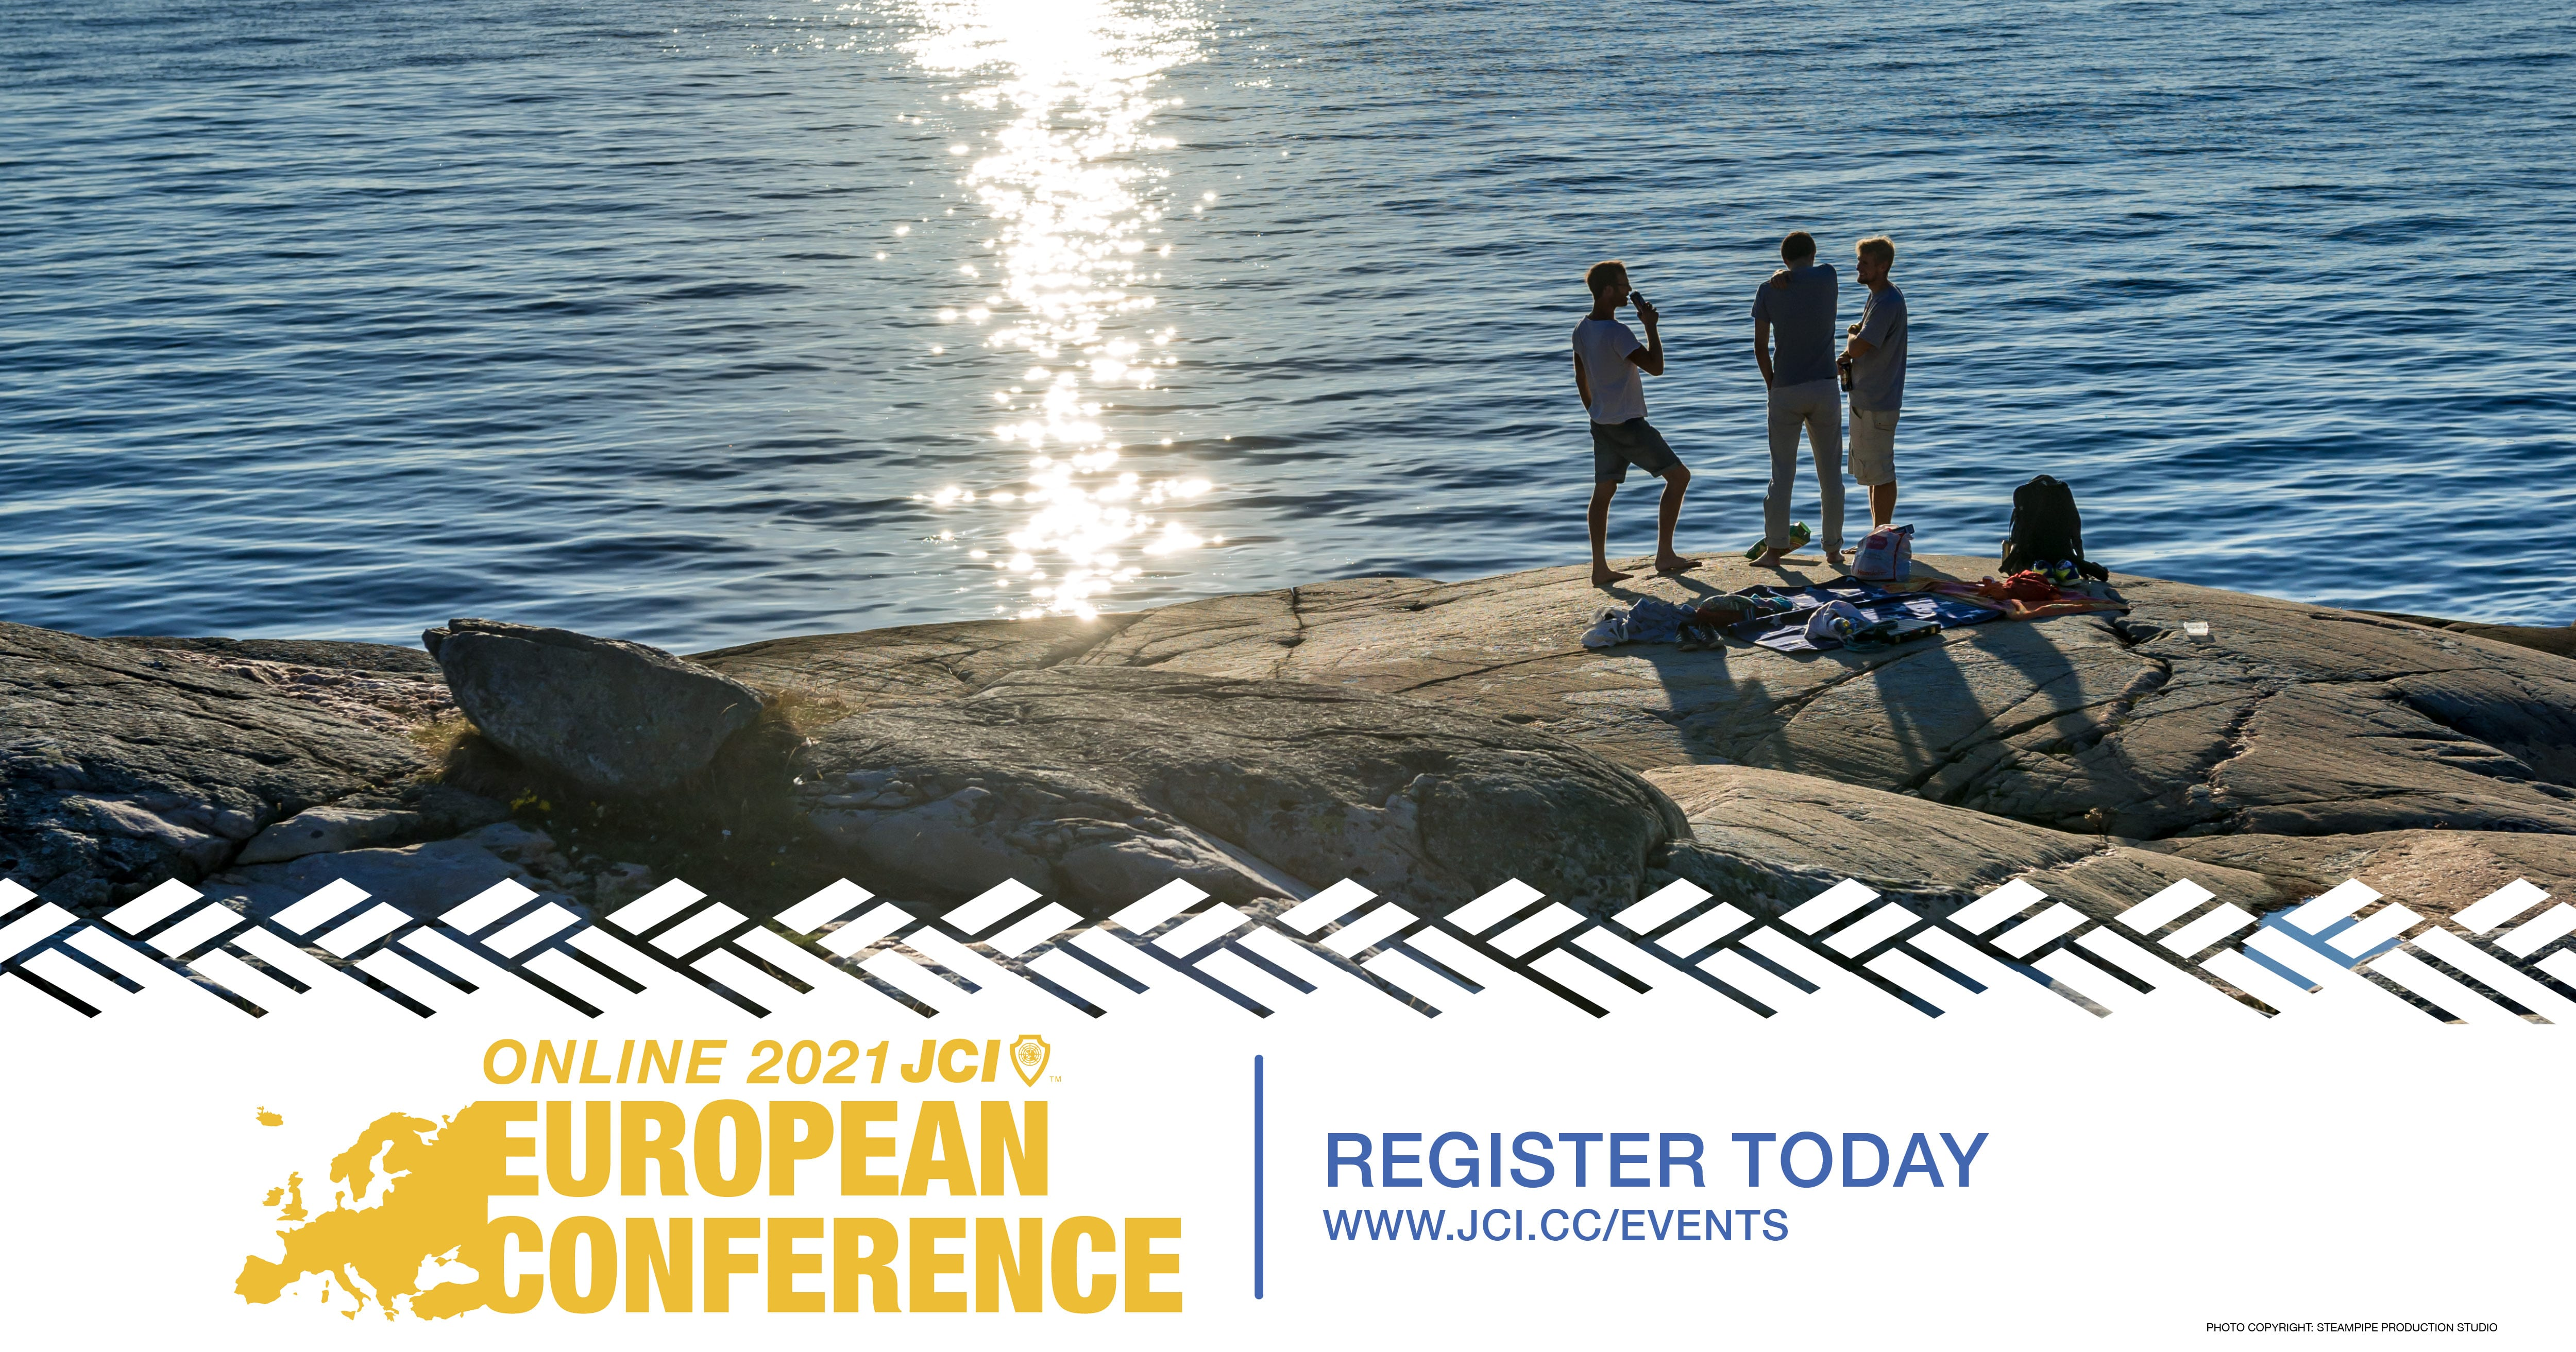 European Conference 2021